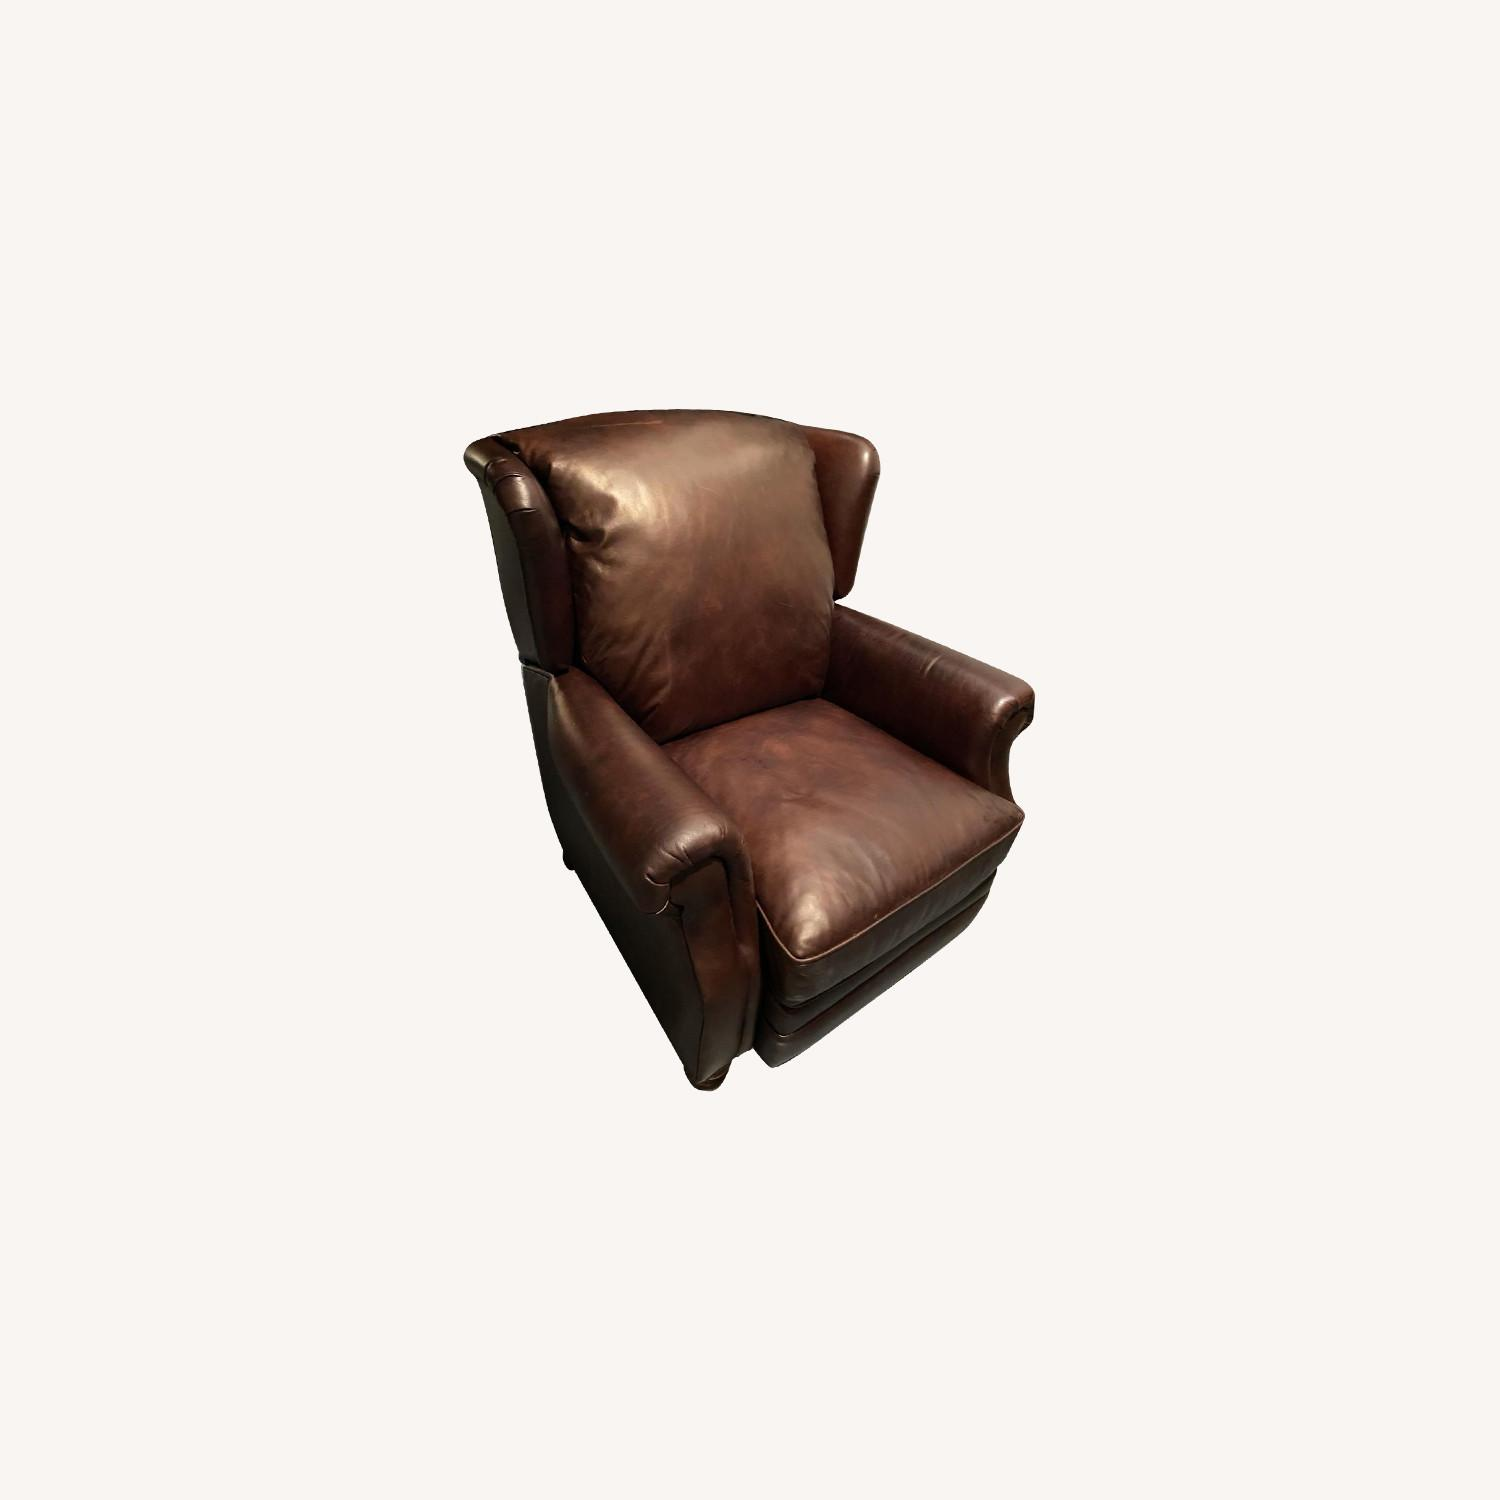 Pottery Barn Leather Recliner - image-0